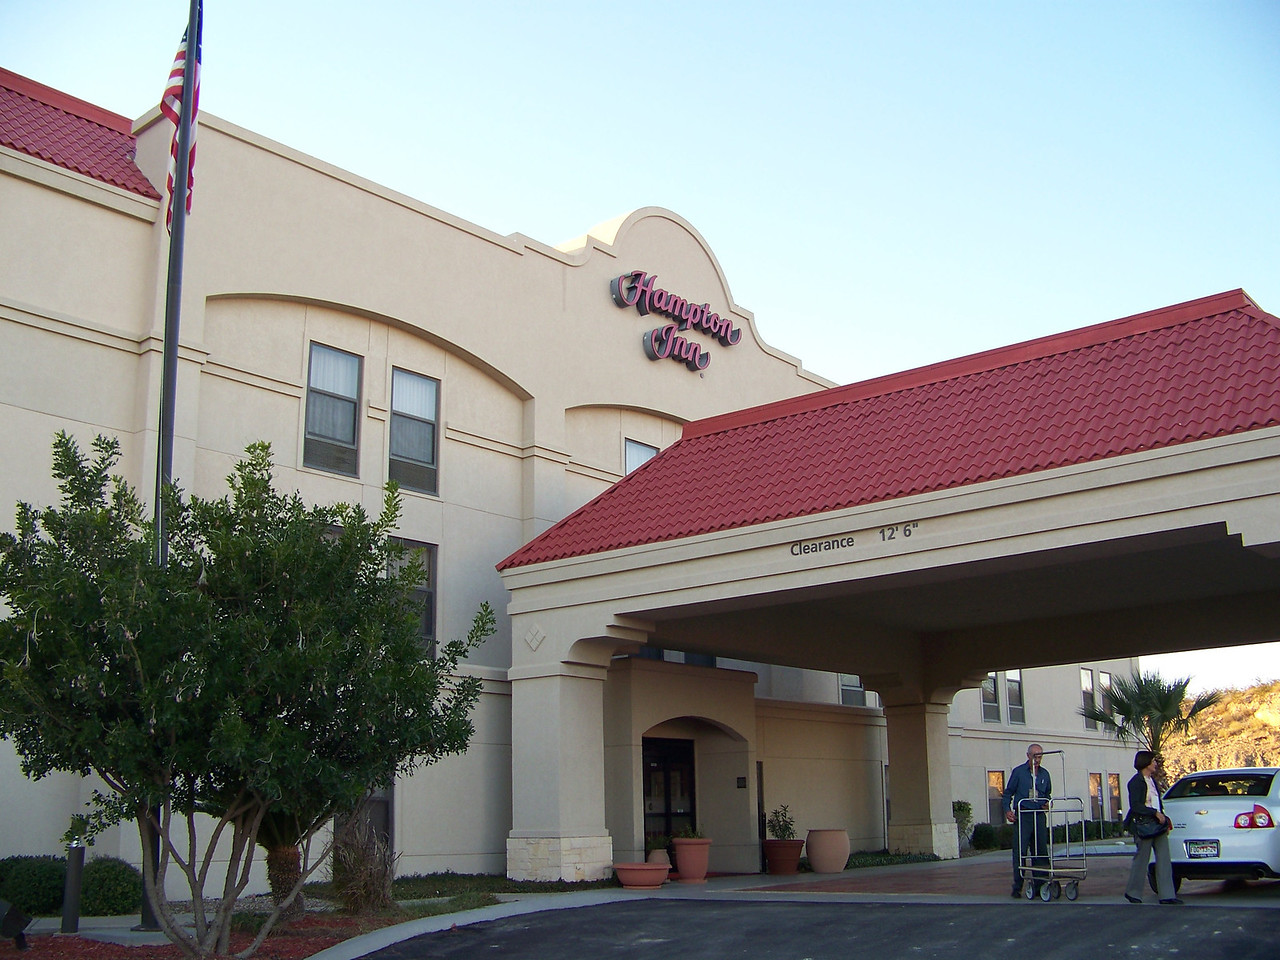 Dad and I took an overnight trip to check out a casino which is about a 2.5 hour drive from New Braunfels.  We spent the night at the Hampton Inn in the city of Eagle Pass, Texas.